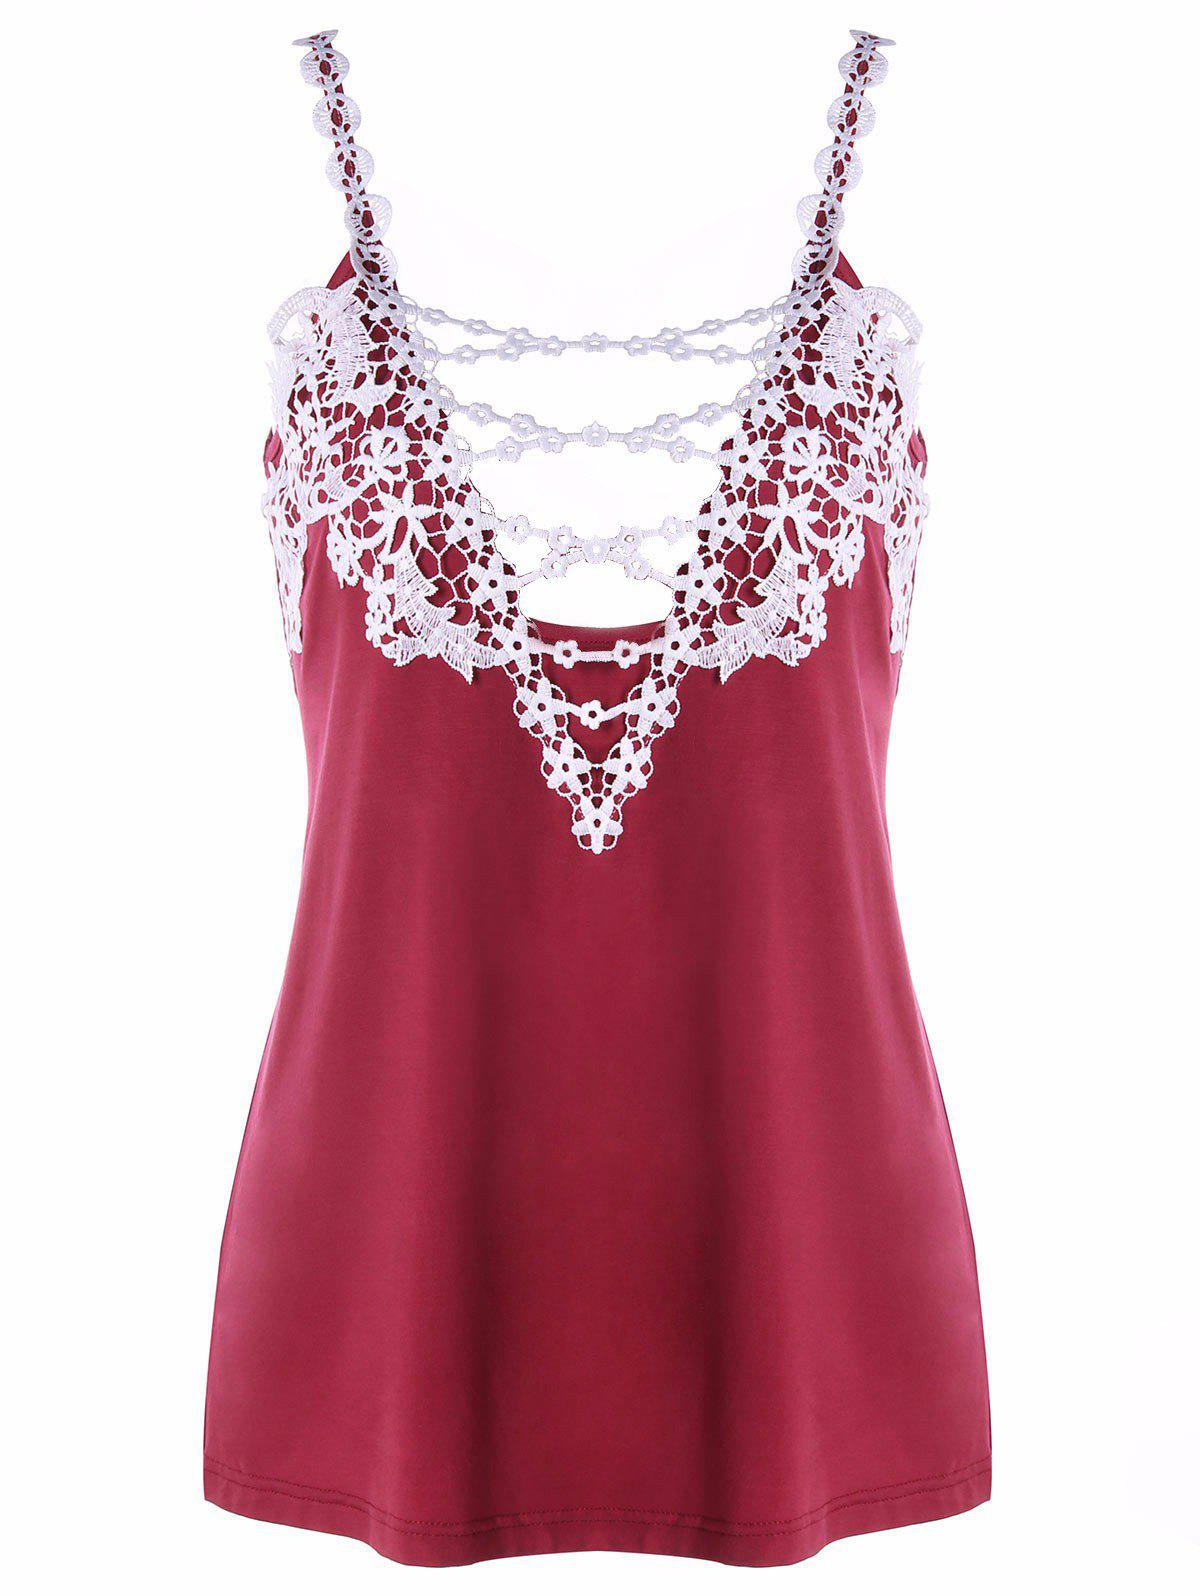 Cami Strap Applique Tank Top - RED L